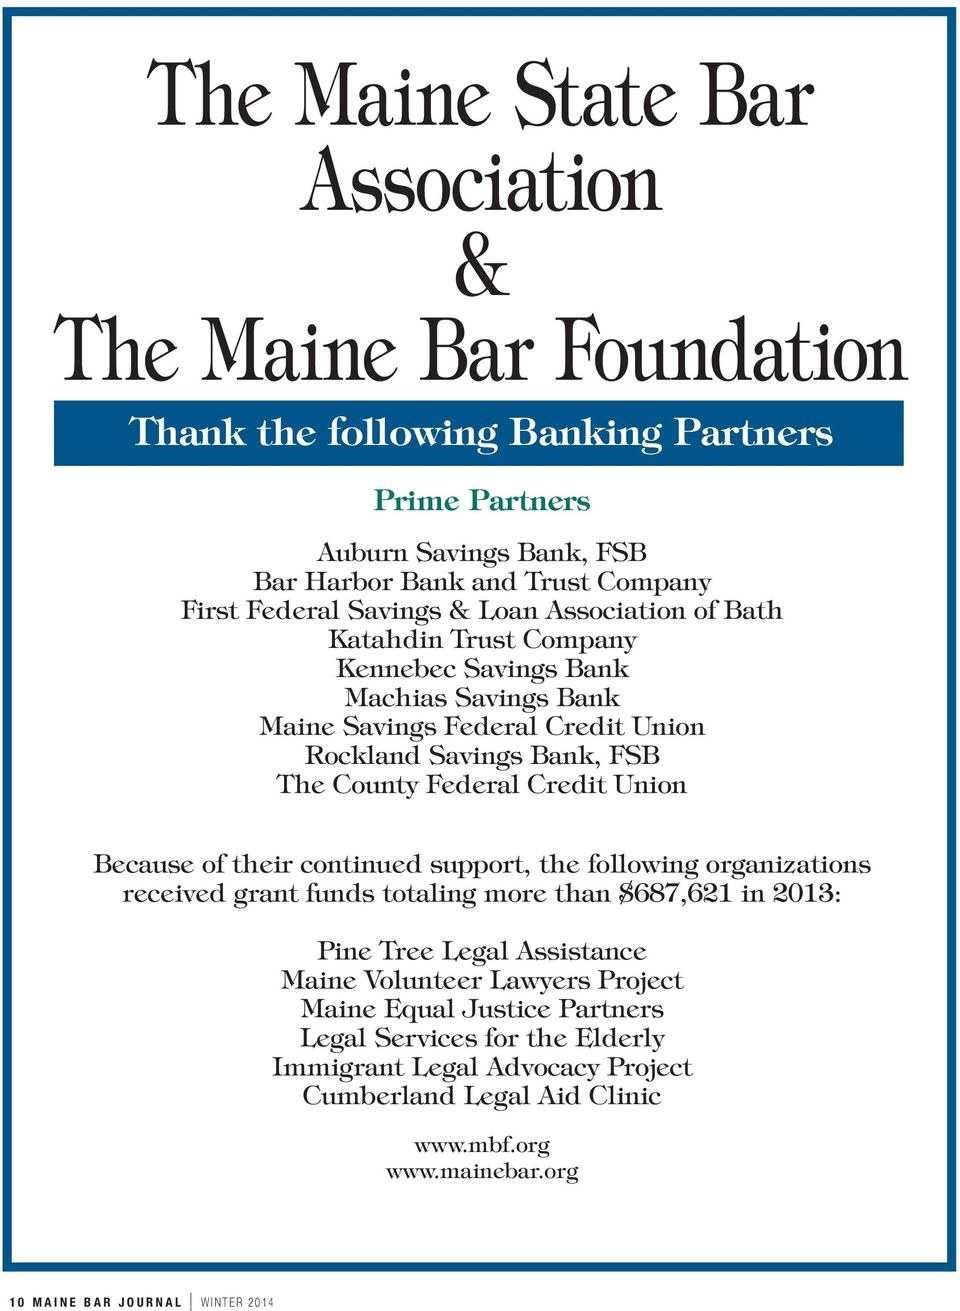 Credit Union Because of their continued support, the following organizations received grant funds totaling more than $687,621 in 2013: Pine Tree Legal Assistance Maine Volunteer Lawyers